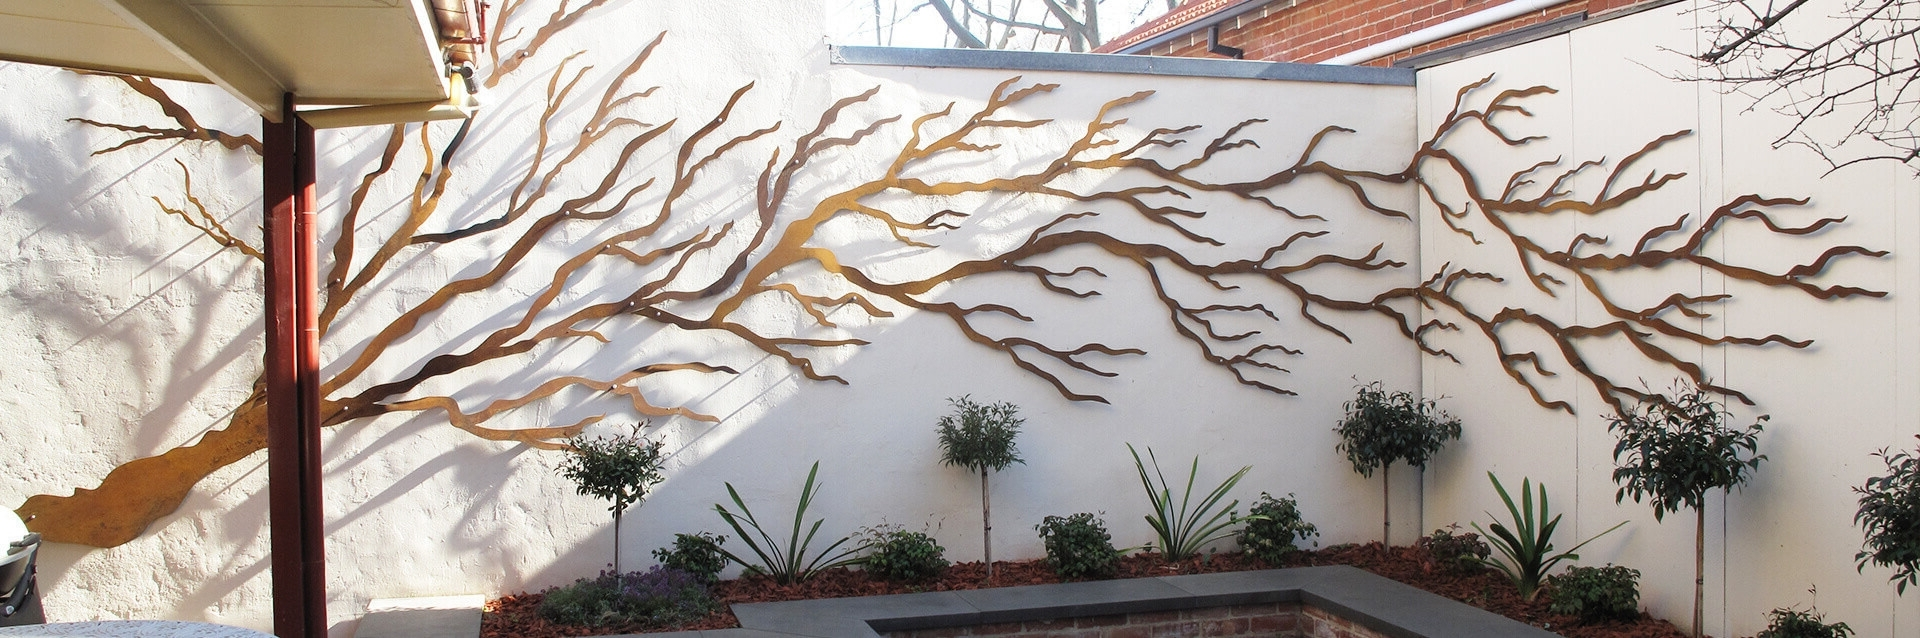 Garden Wall Art with regard to Most Recent Garden Wall Decoration Ideas Uk Wall Decor Ideas Inspiration Of